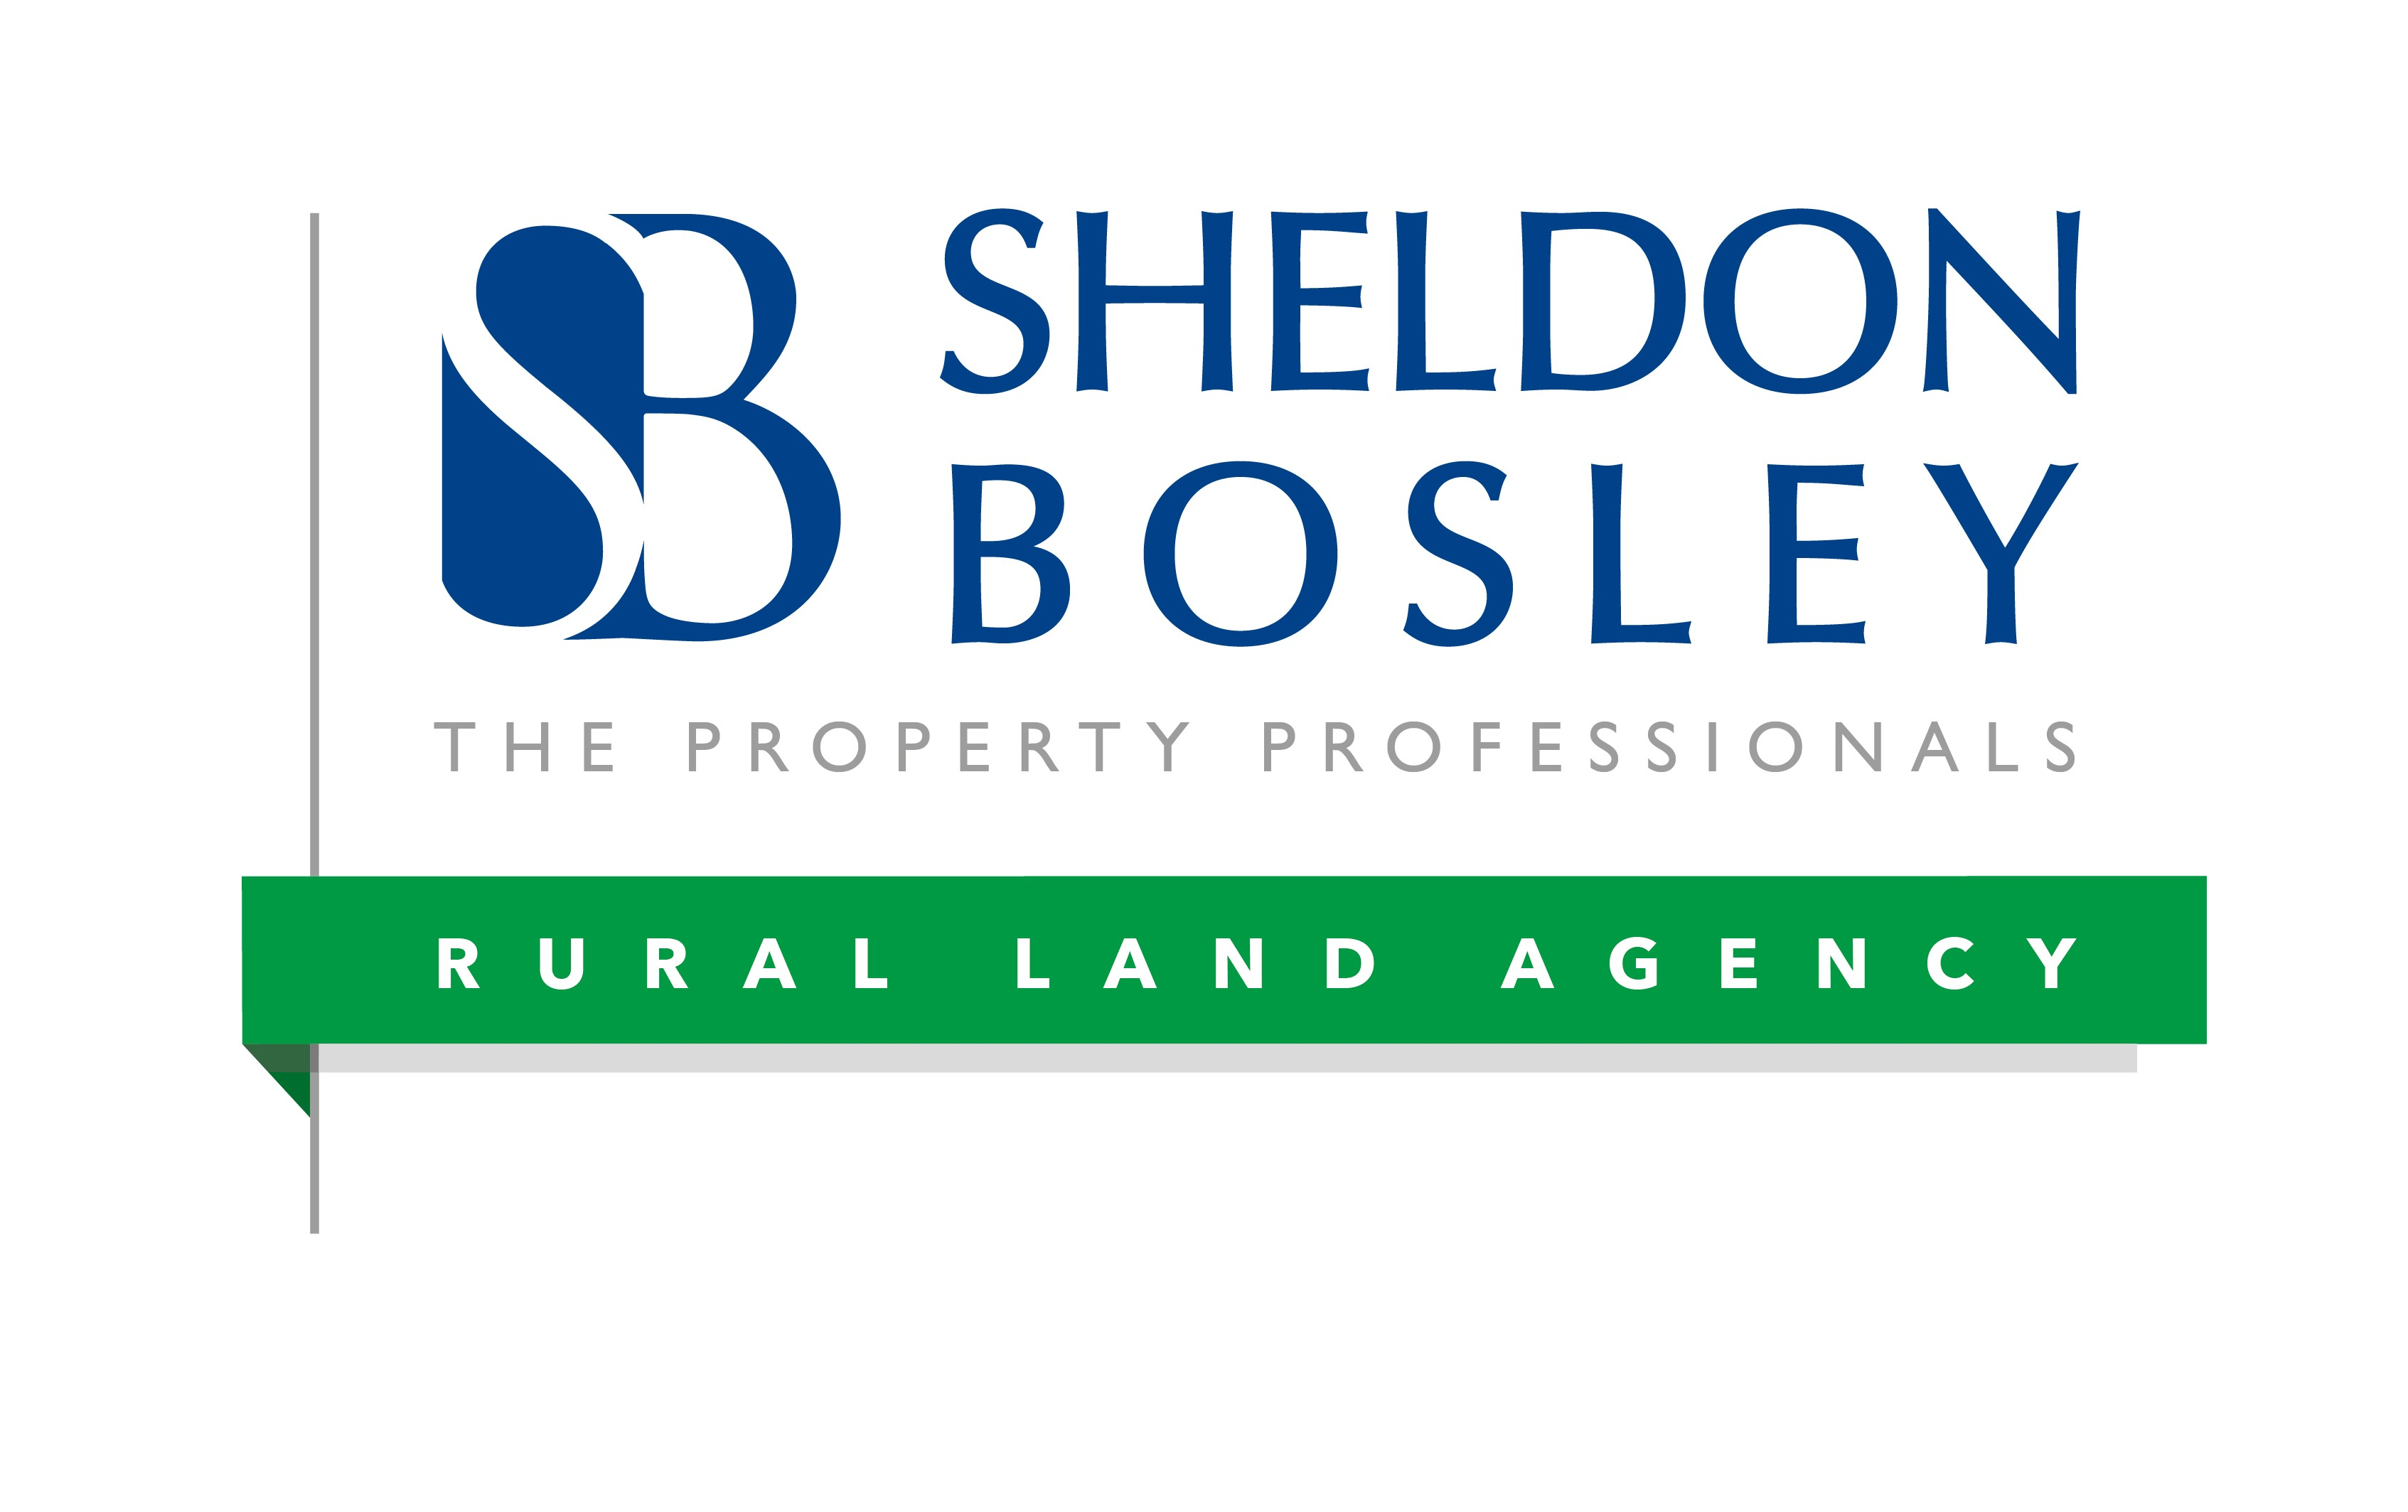 Sheldon Bosley Rural Land Agency - Shipston on Stour and Stratford upon Avon in Warwickshire - LS - Landscape